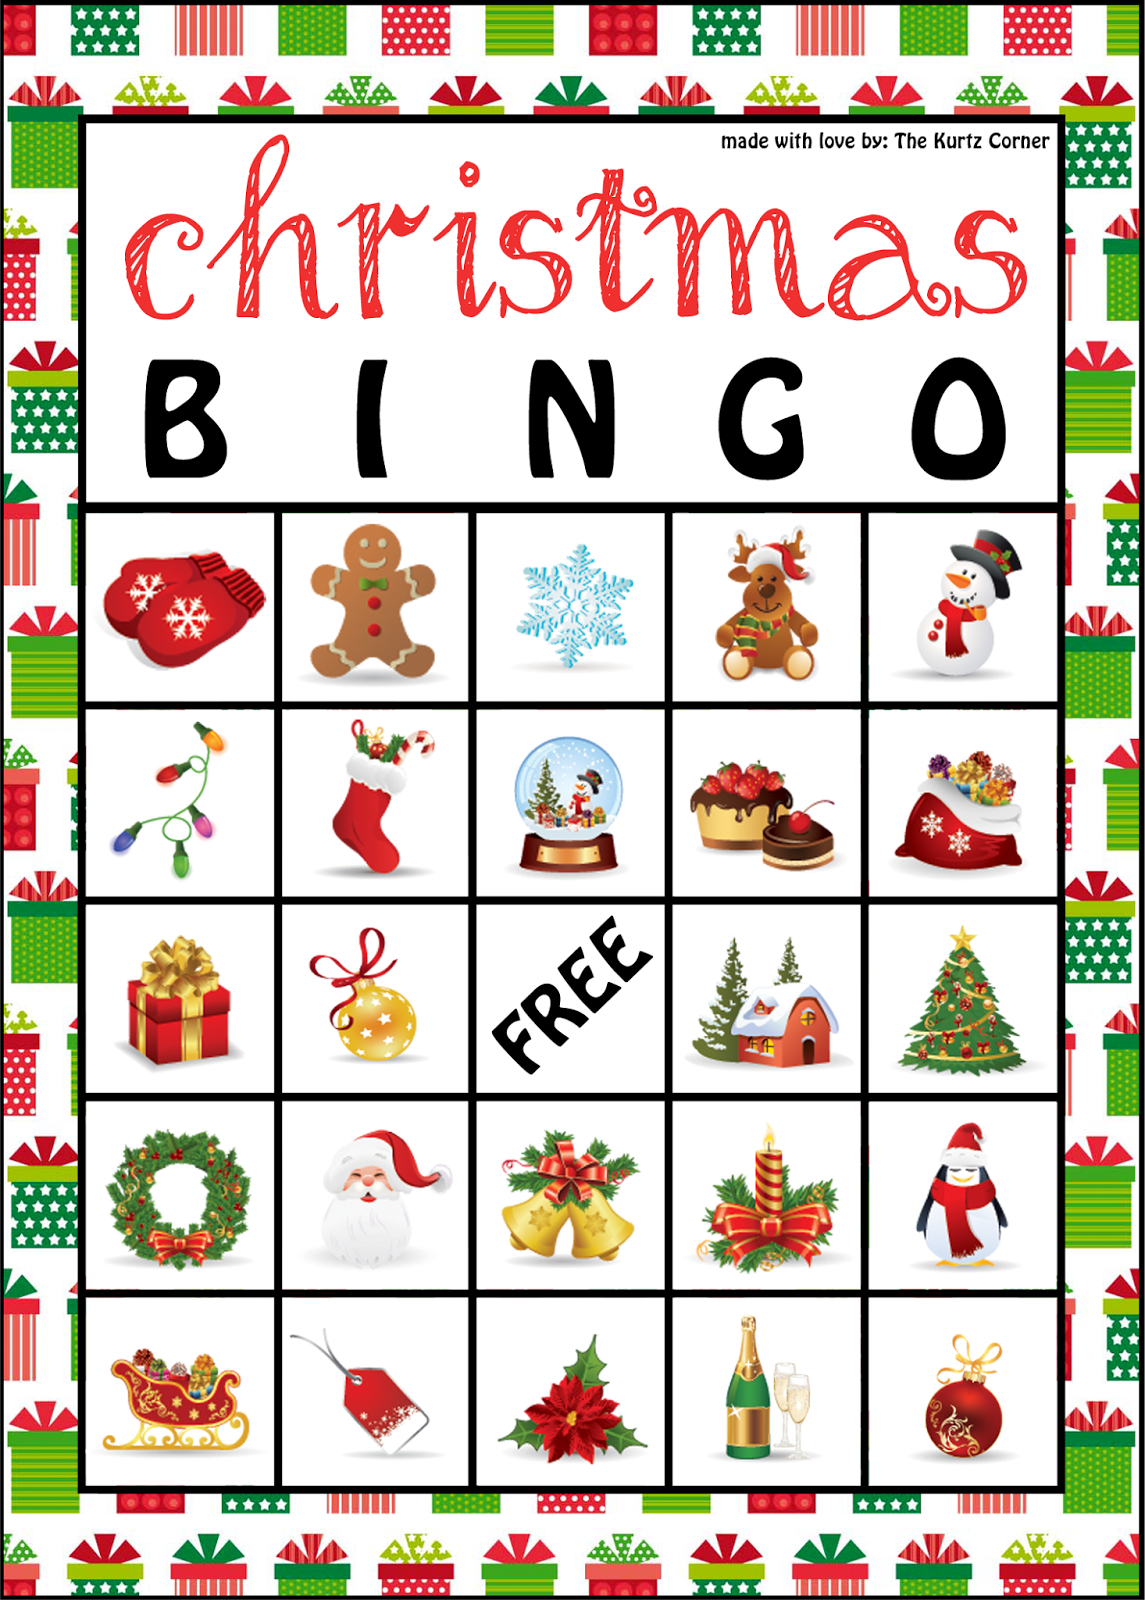 The Kurtz Corner: Free Printable Christmas Bingo Cards | Winter / X - Free Printable Bingo Cards And Call Sheet